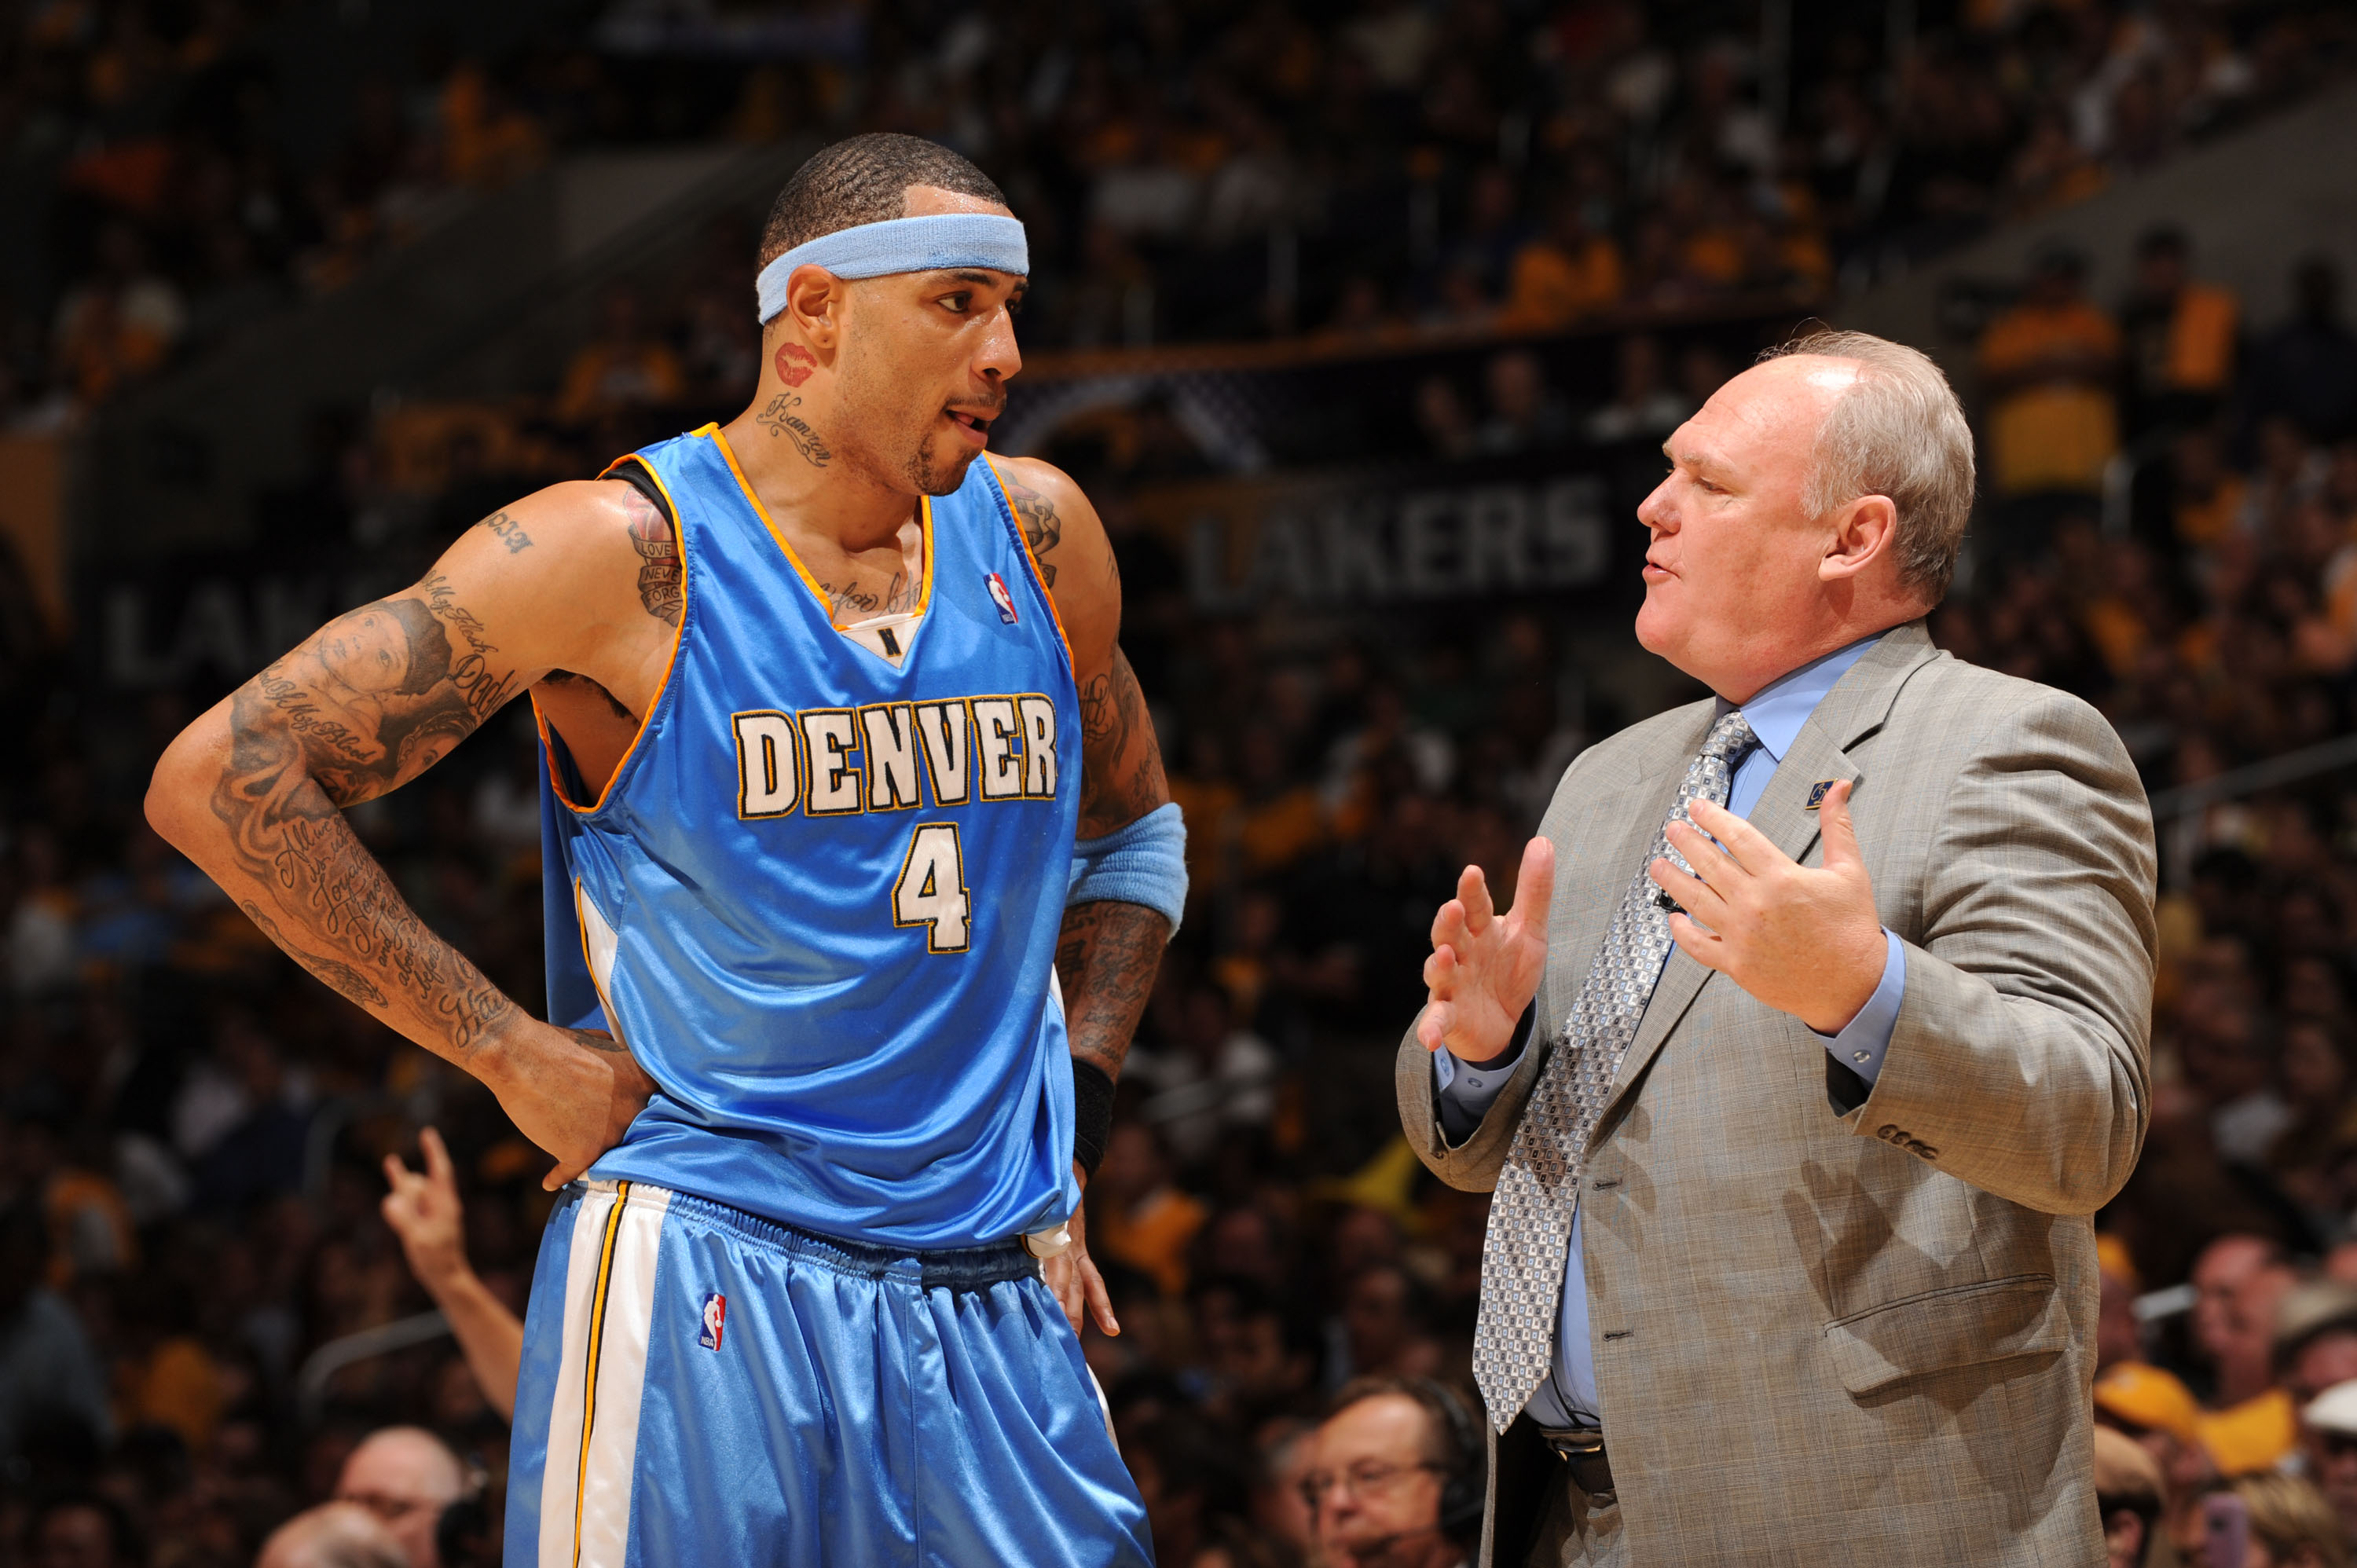 LOS ANGELES - MAY 19: Kenyon Martin #4 of the Denver Nuggets receives instruction from Head Coach George Karl while taking on the Los Angeles Lakers in Game One of the Western Conference Finals during the 2009 NBA Playoffs at Staples Center on May 19, 2009 in Los Angeles, California. NOTE TO USER: User expressly acknowledges and agrees that, by downloading and/or using this Photograph, user is consenting to the terms and conditions of the Getty Images License Agreement. Mandatory Copyright Notice: Copyright 2009 NBAE (Photo by Noah Graham/NBAE via Getty Images)